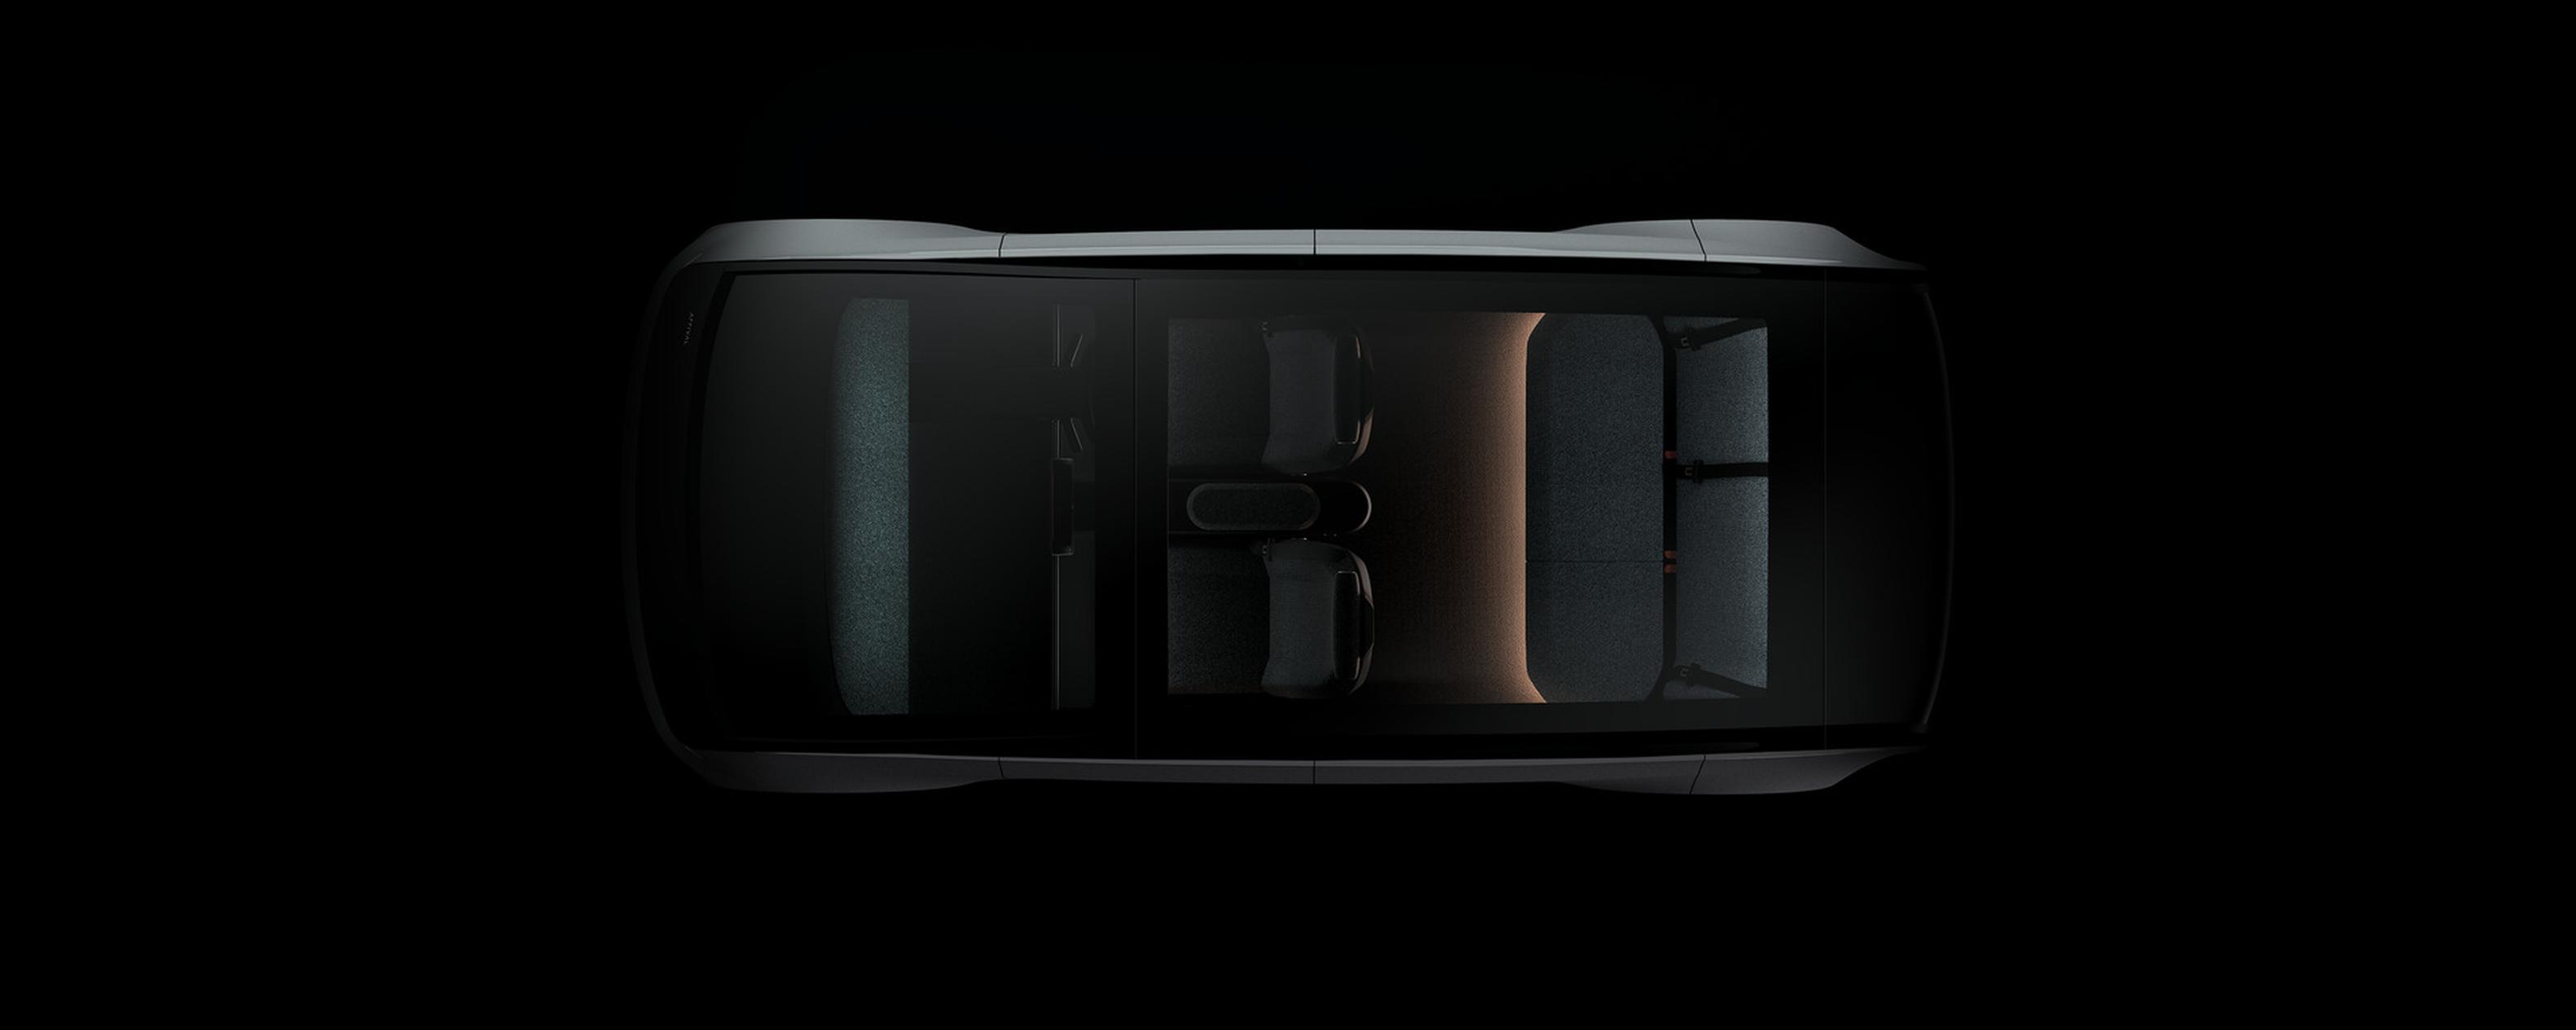 The Arrival Car will feature a panoramic roof, offer ample space for passengers and their luggage while also being more comfortable for drivers (Arrival)